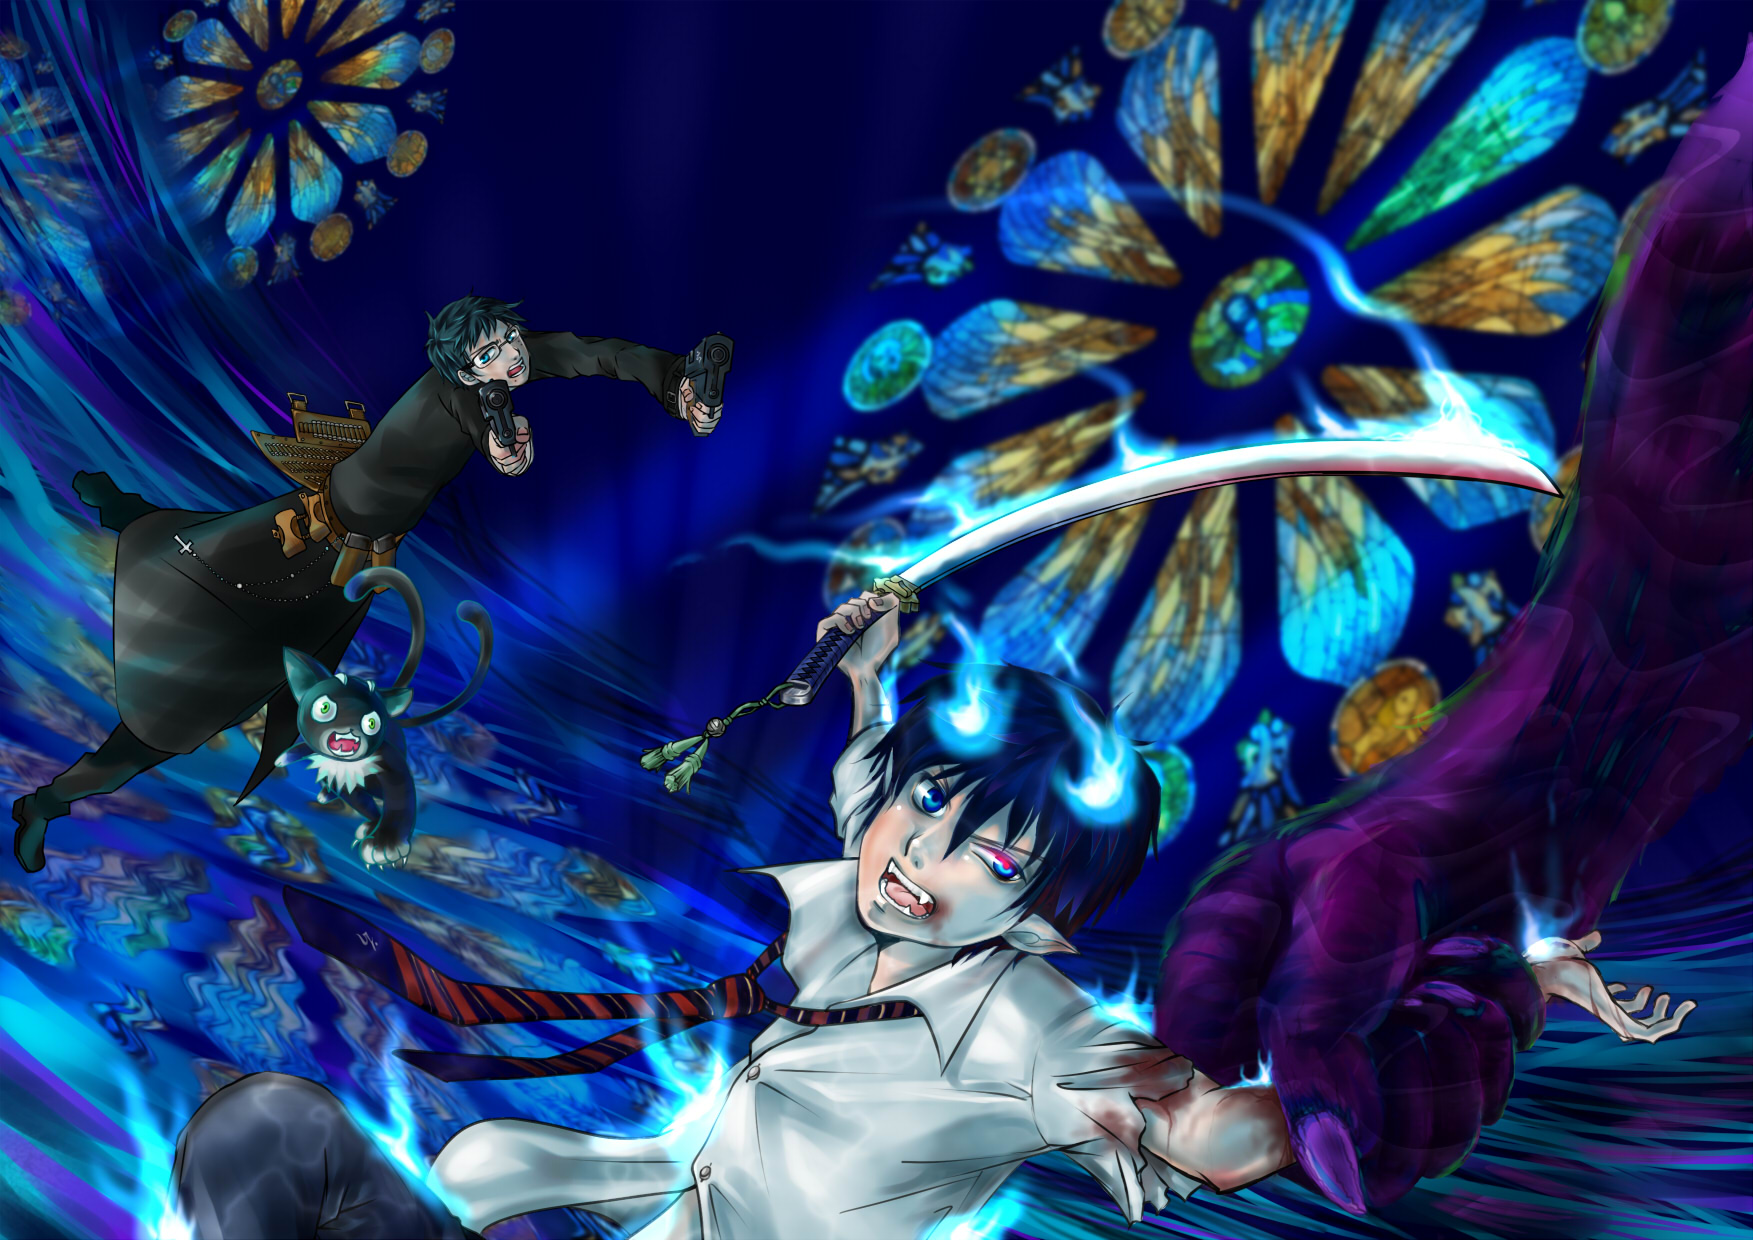 Blue exorcist wallpaper and background image 1753x1240 - Blue anime wallpaper ...